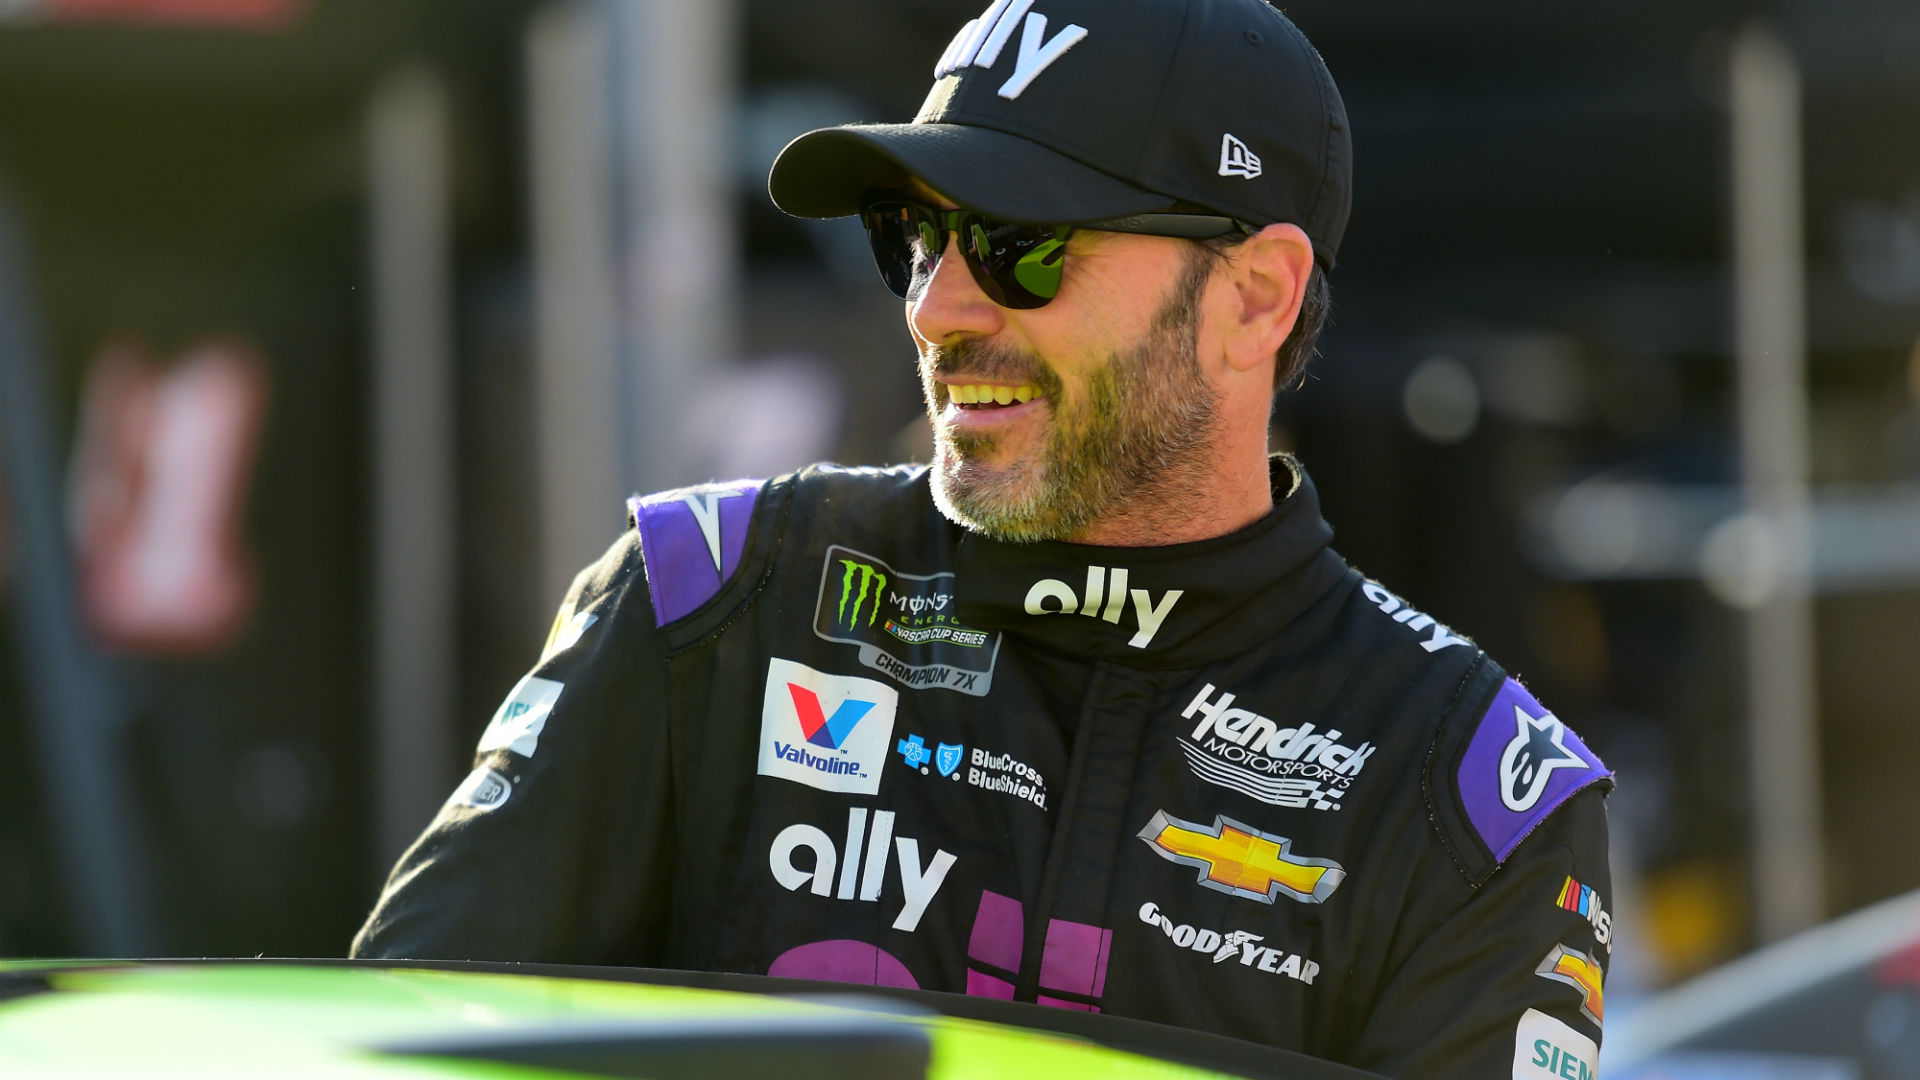 NASCAR fans celebrate Jimmie Johnson's lead in final race: 'Playing with the heart strings'